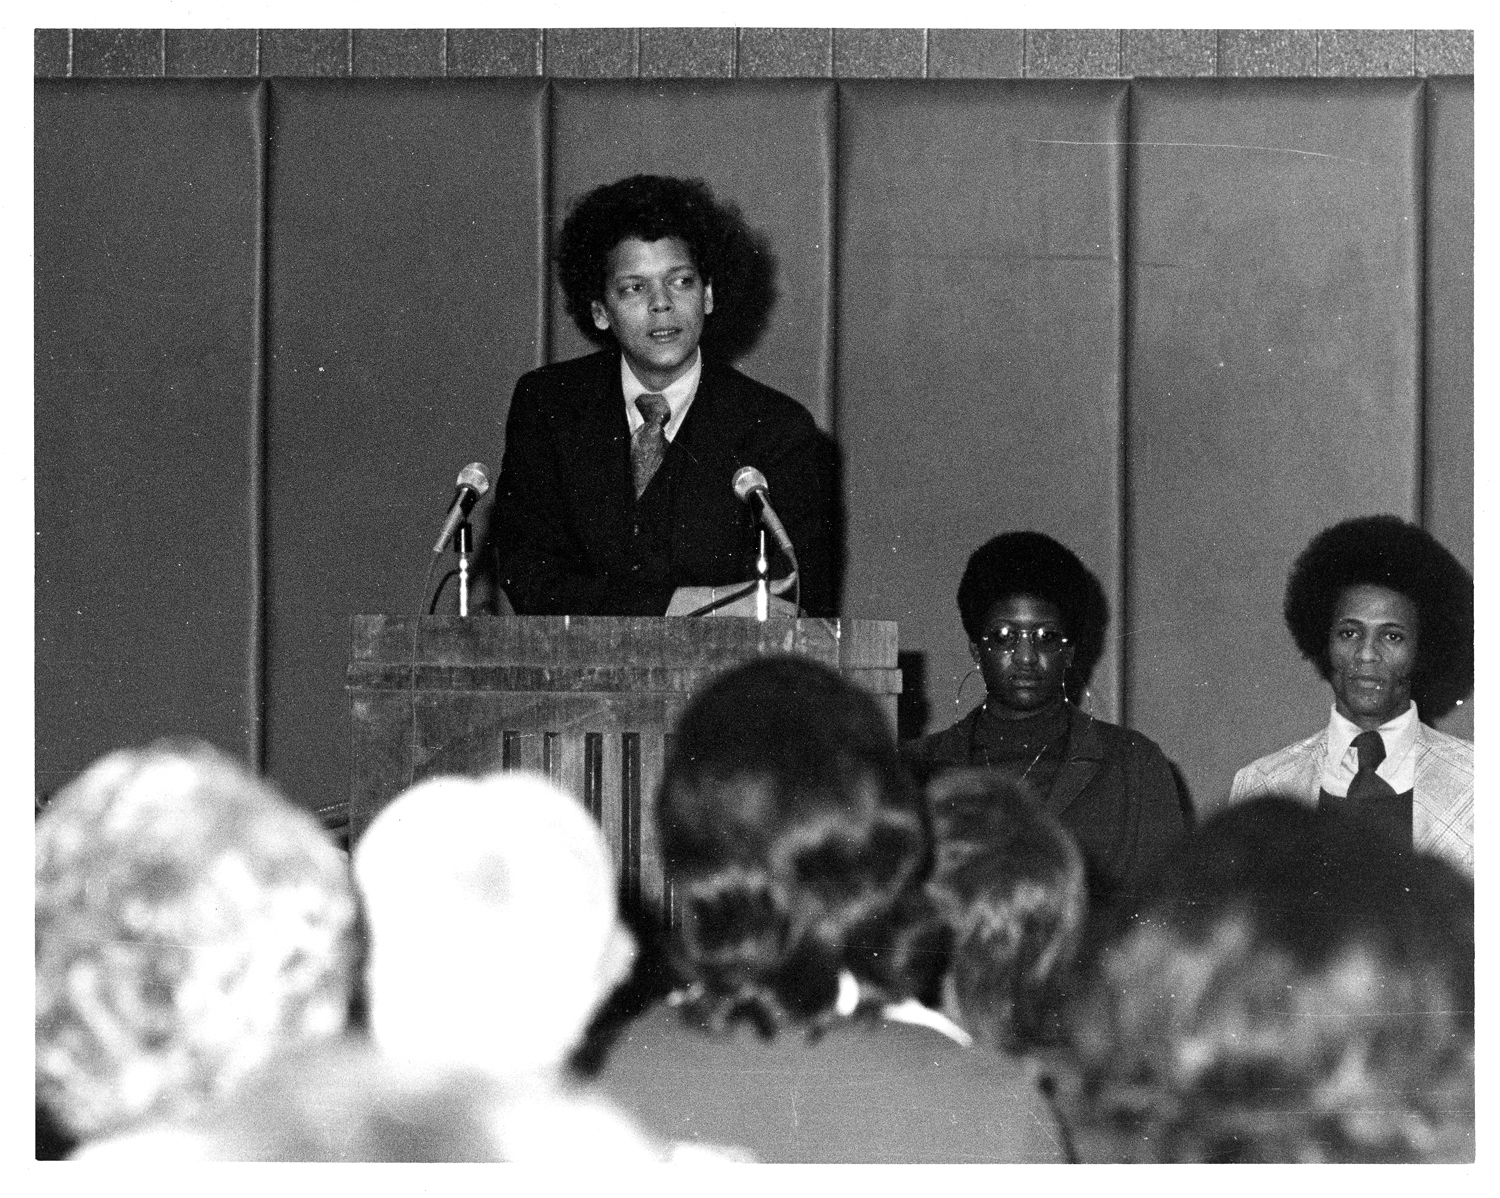 Julian Bond speaks at George Mason University's Festival of Exposure, February 23, 1975